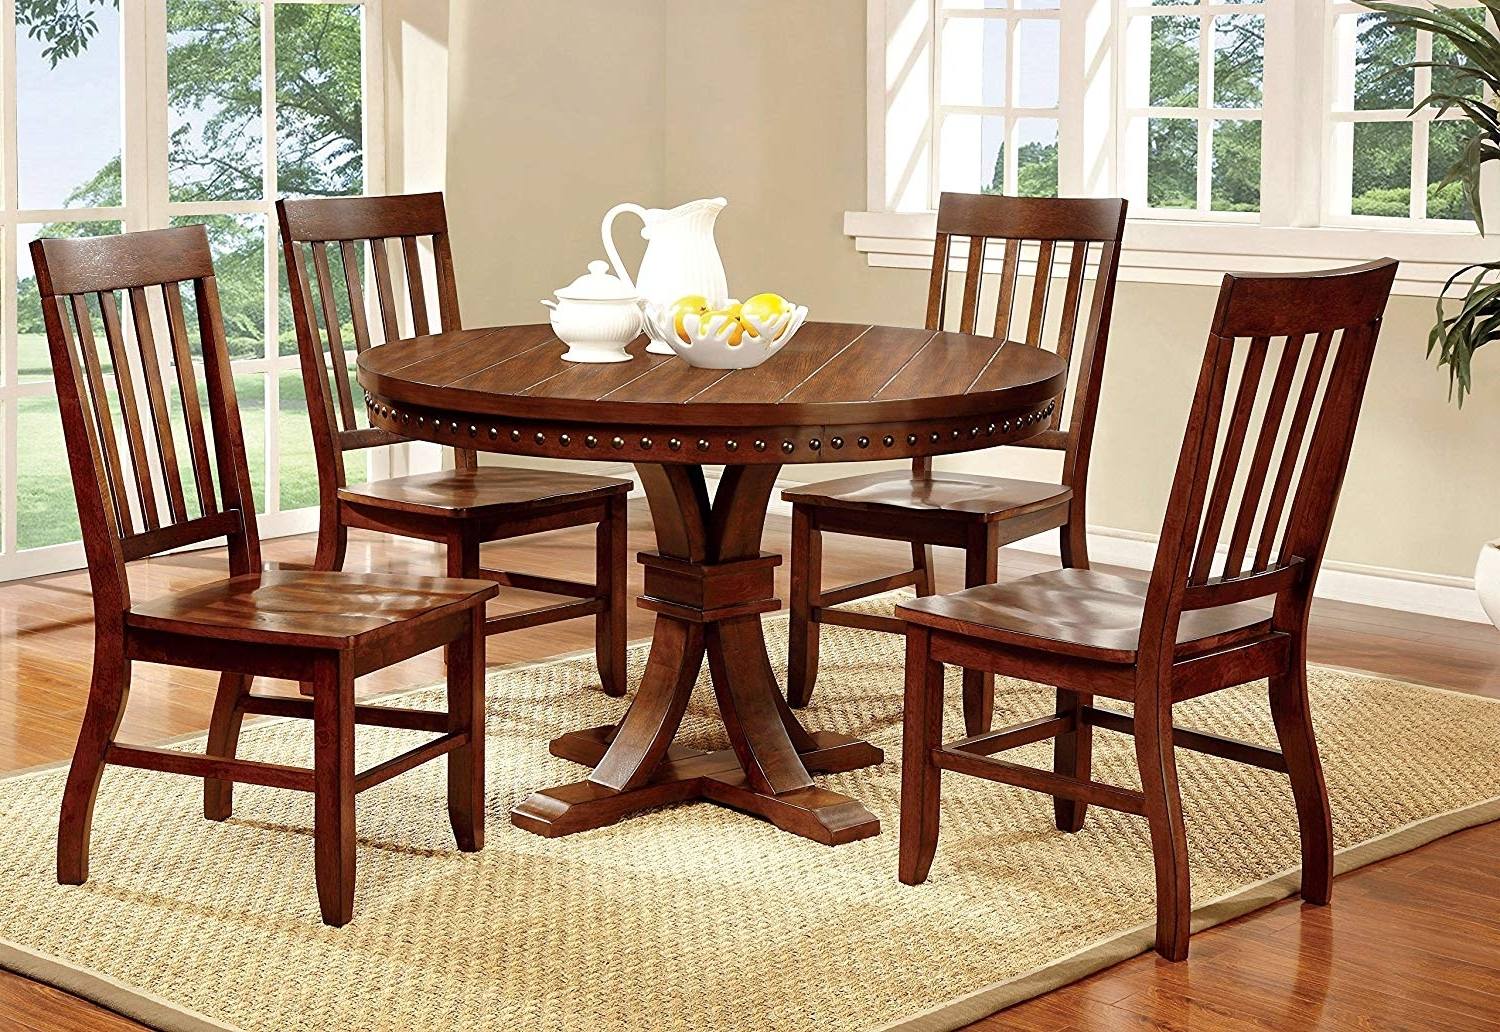 Amazon – Furniture Of America Castile 5 Piece Transitional Round Regarding Fashionable Dining Table Chair Sets (View 2 of 25)